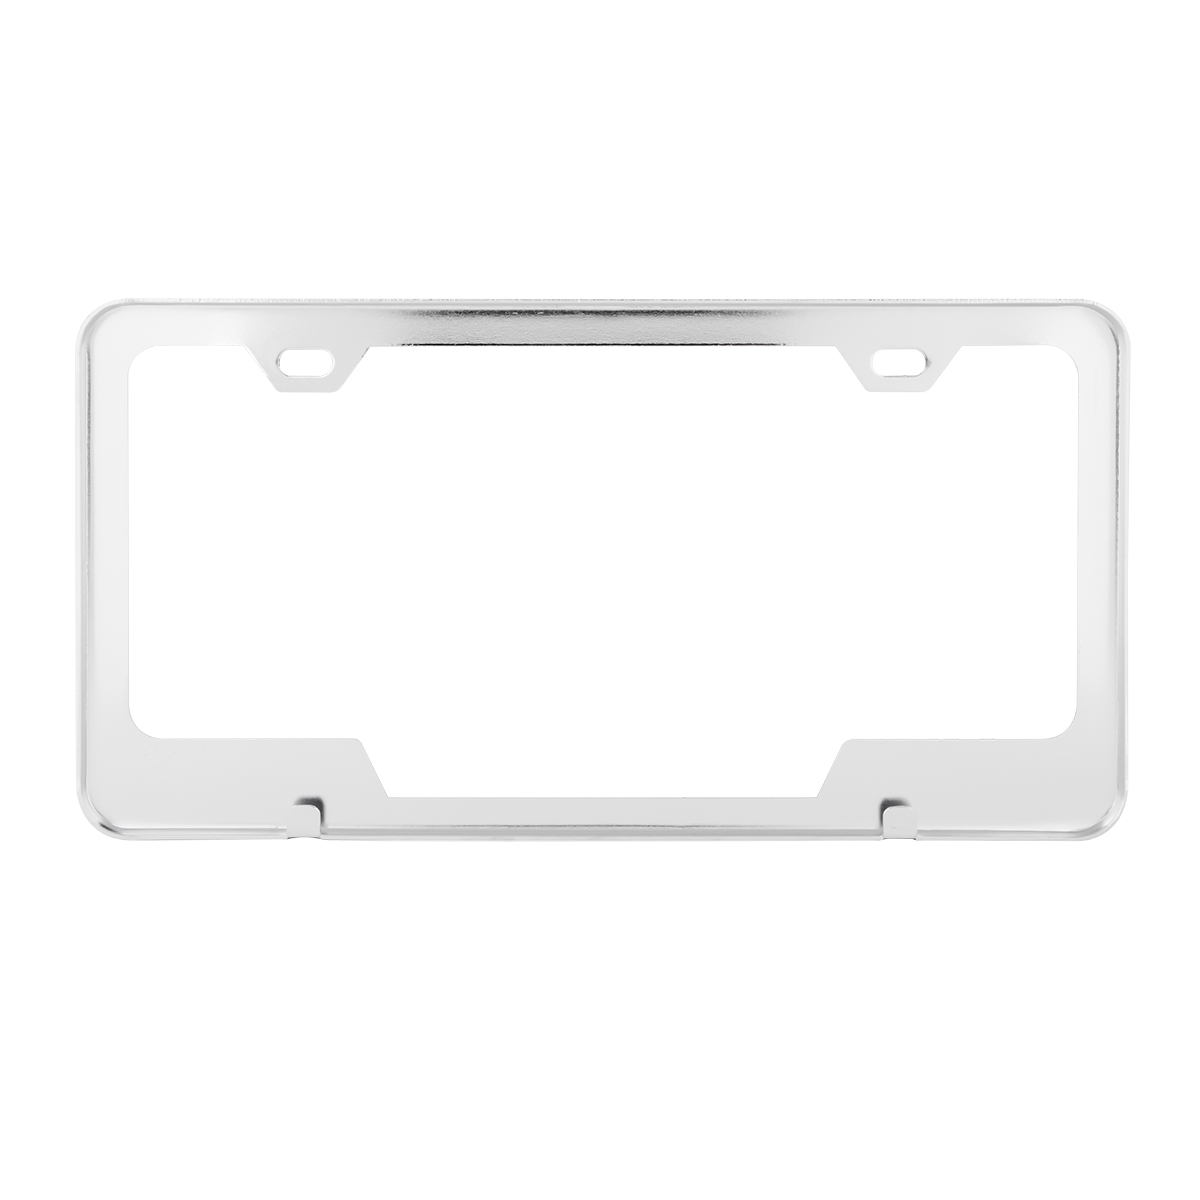 60404 Plain 2-Hole License Plate Frames with Center Cut